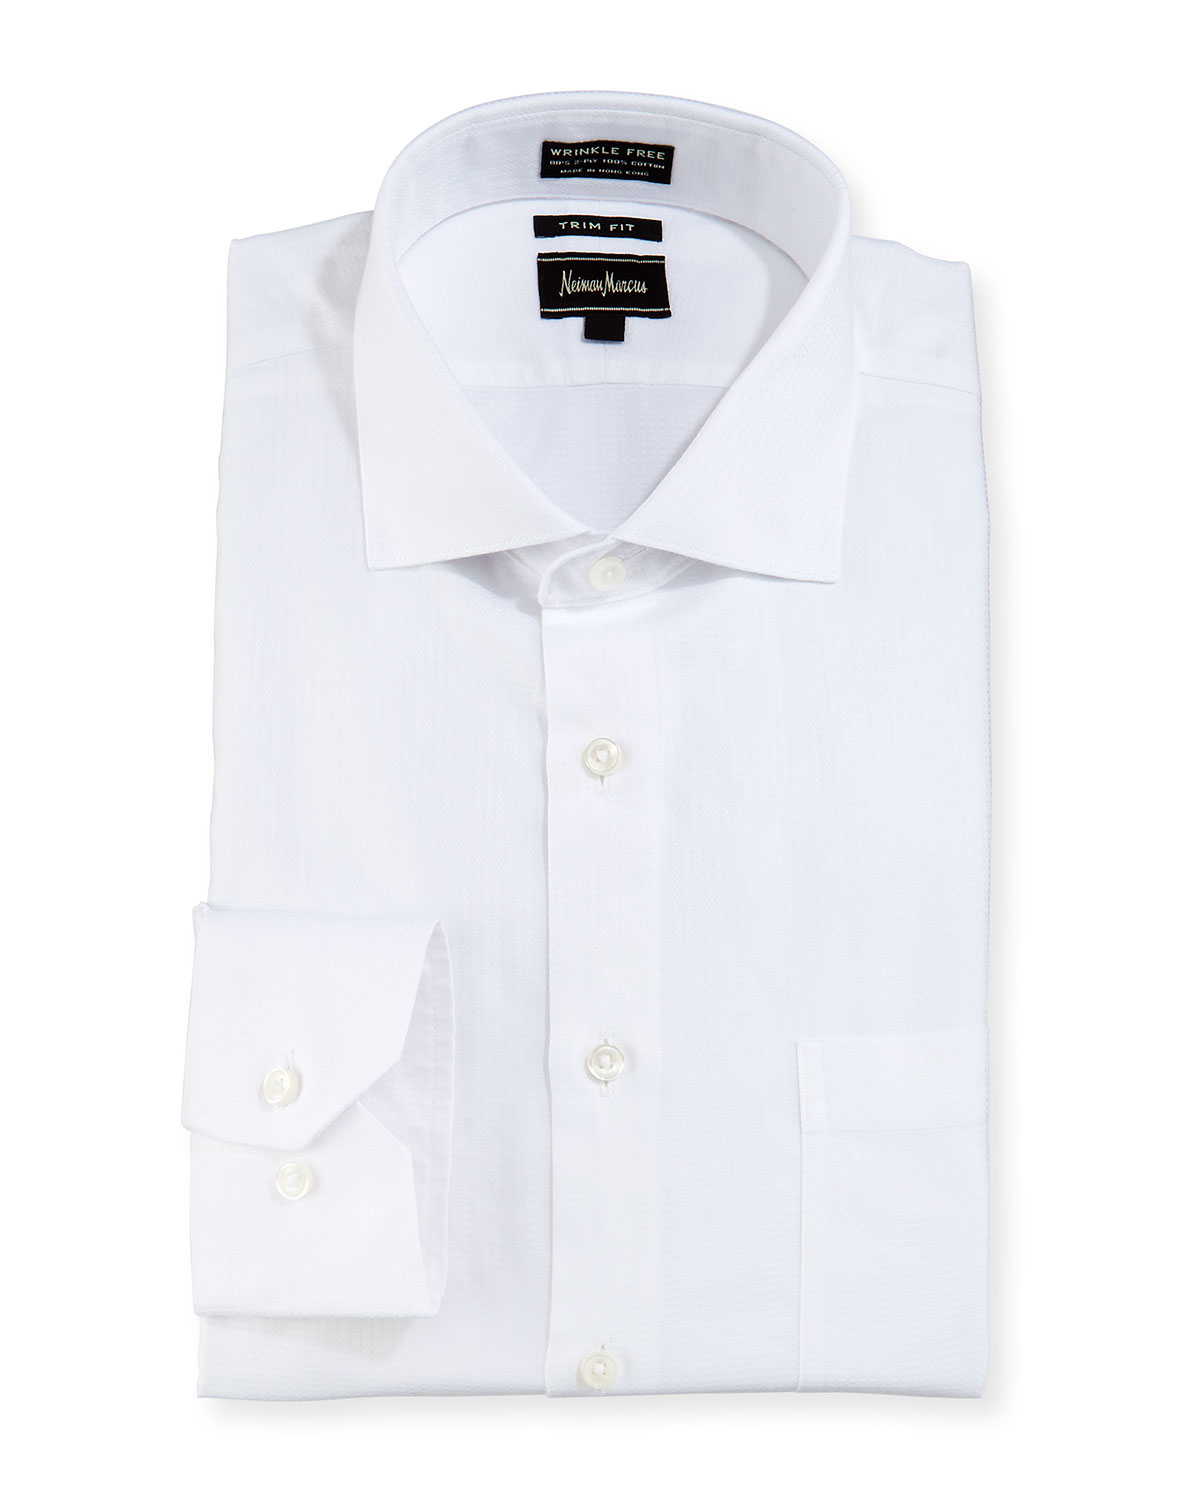 Neiman marcus trim fit non iron dobby dress shirt in white for White non iron dress shirts